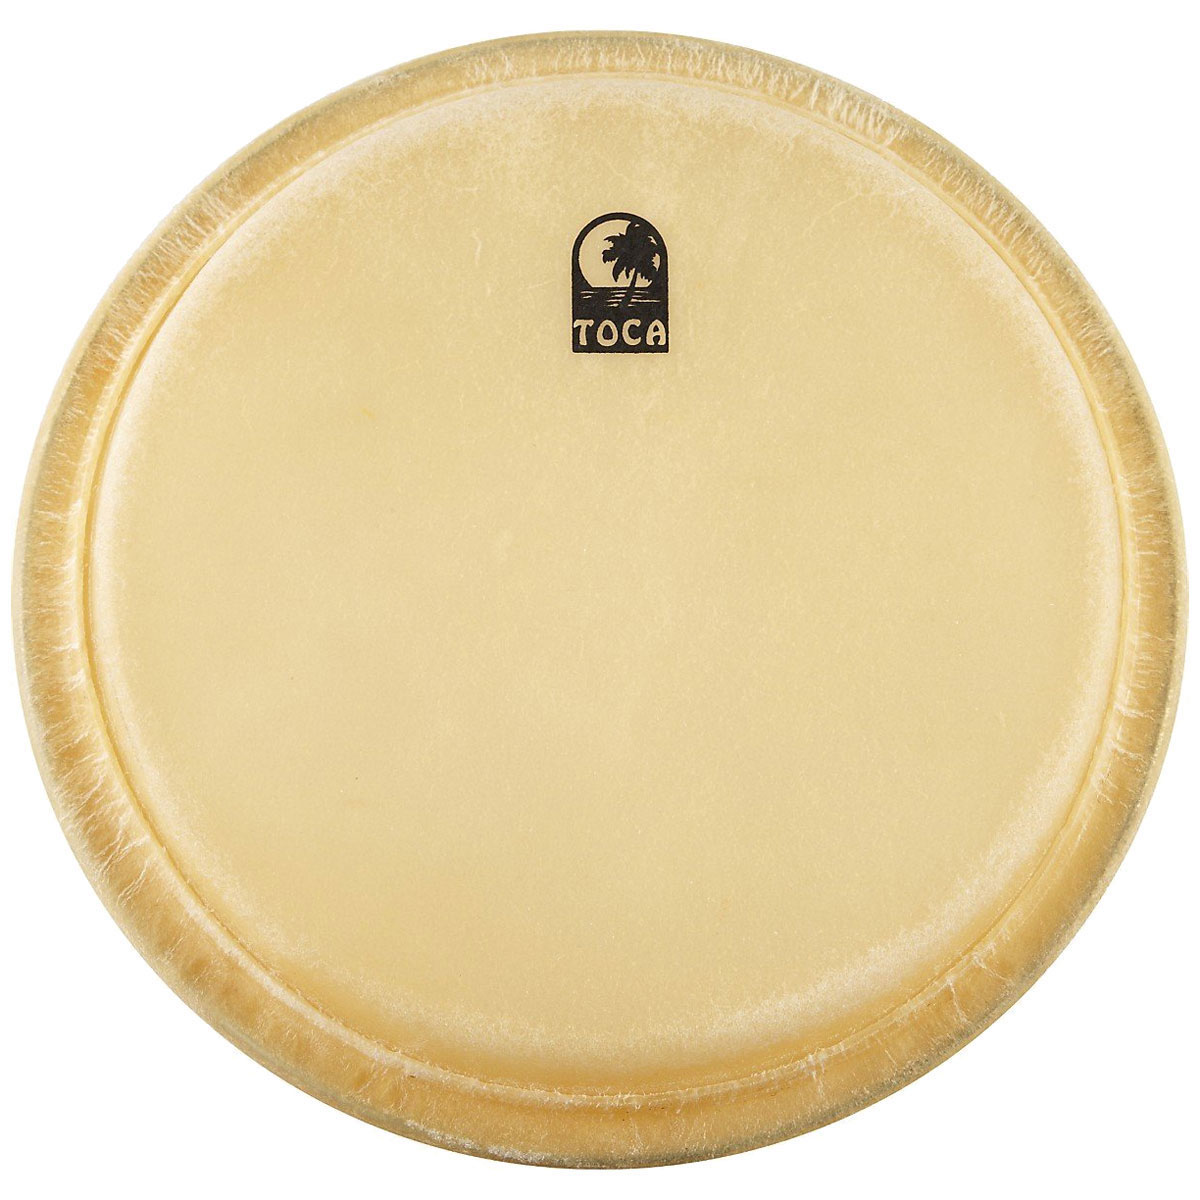 "Toca 7"" Elite Pro Wood Rawhide Bongo Drum Head"